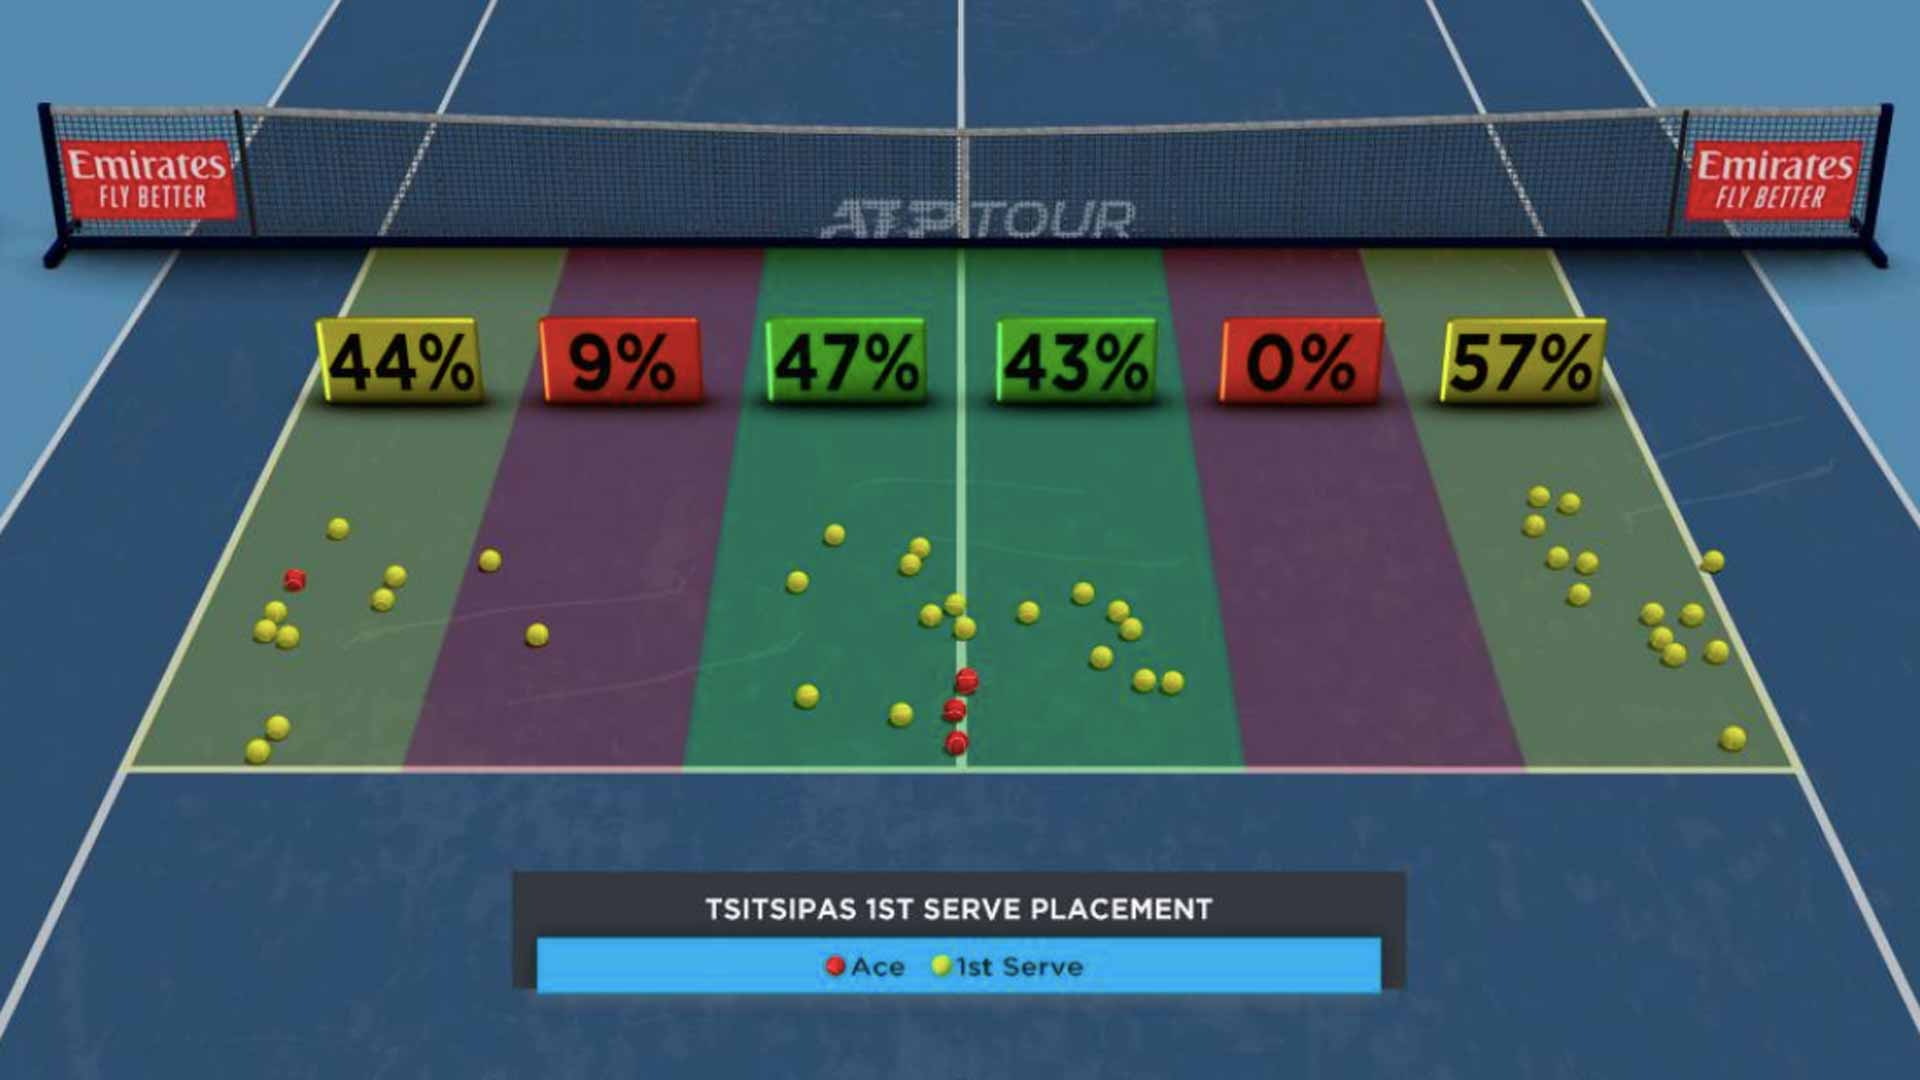 Tsitsipas First-Serve Placement